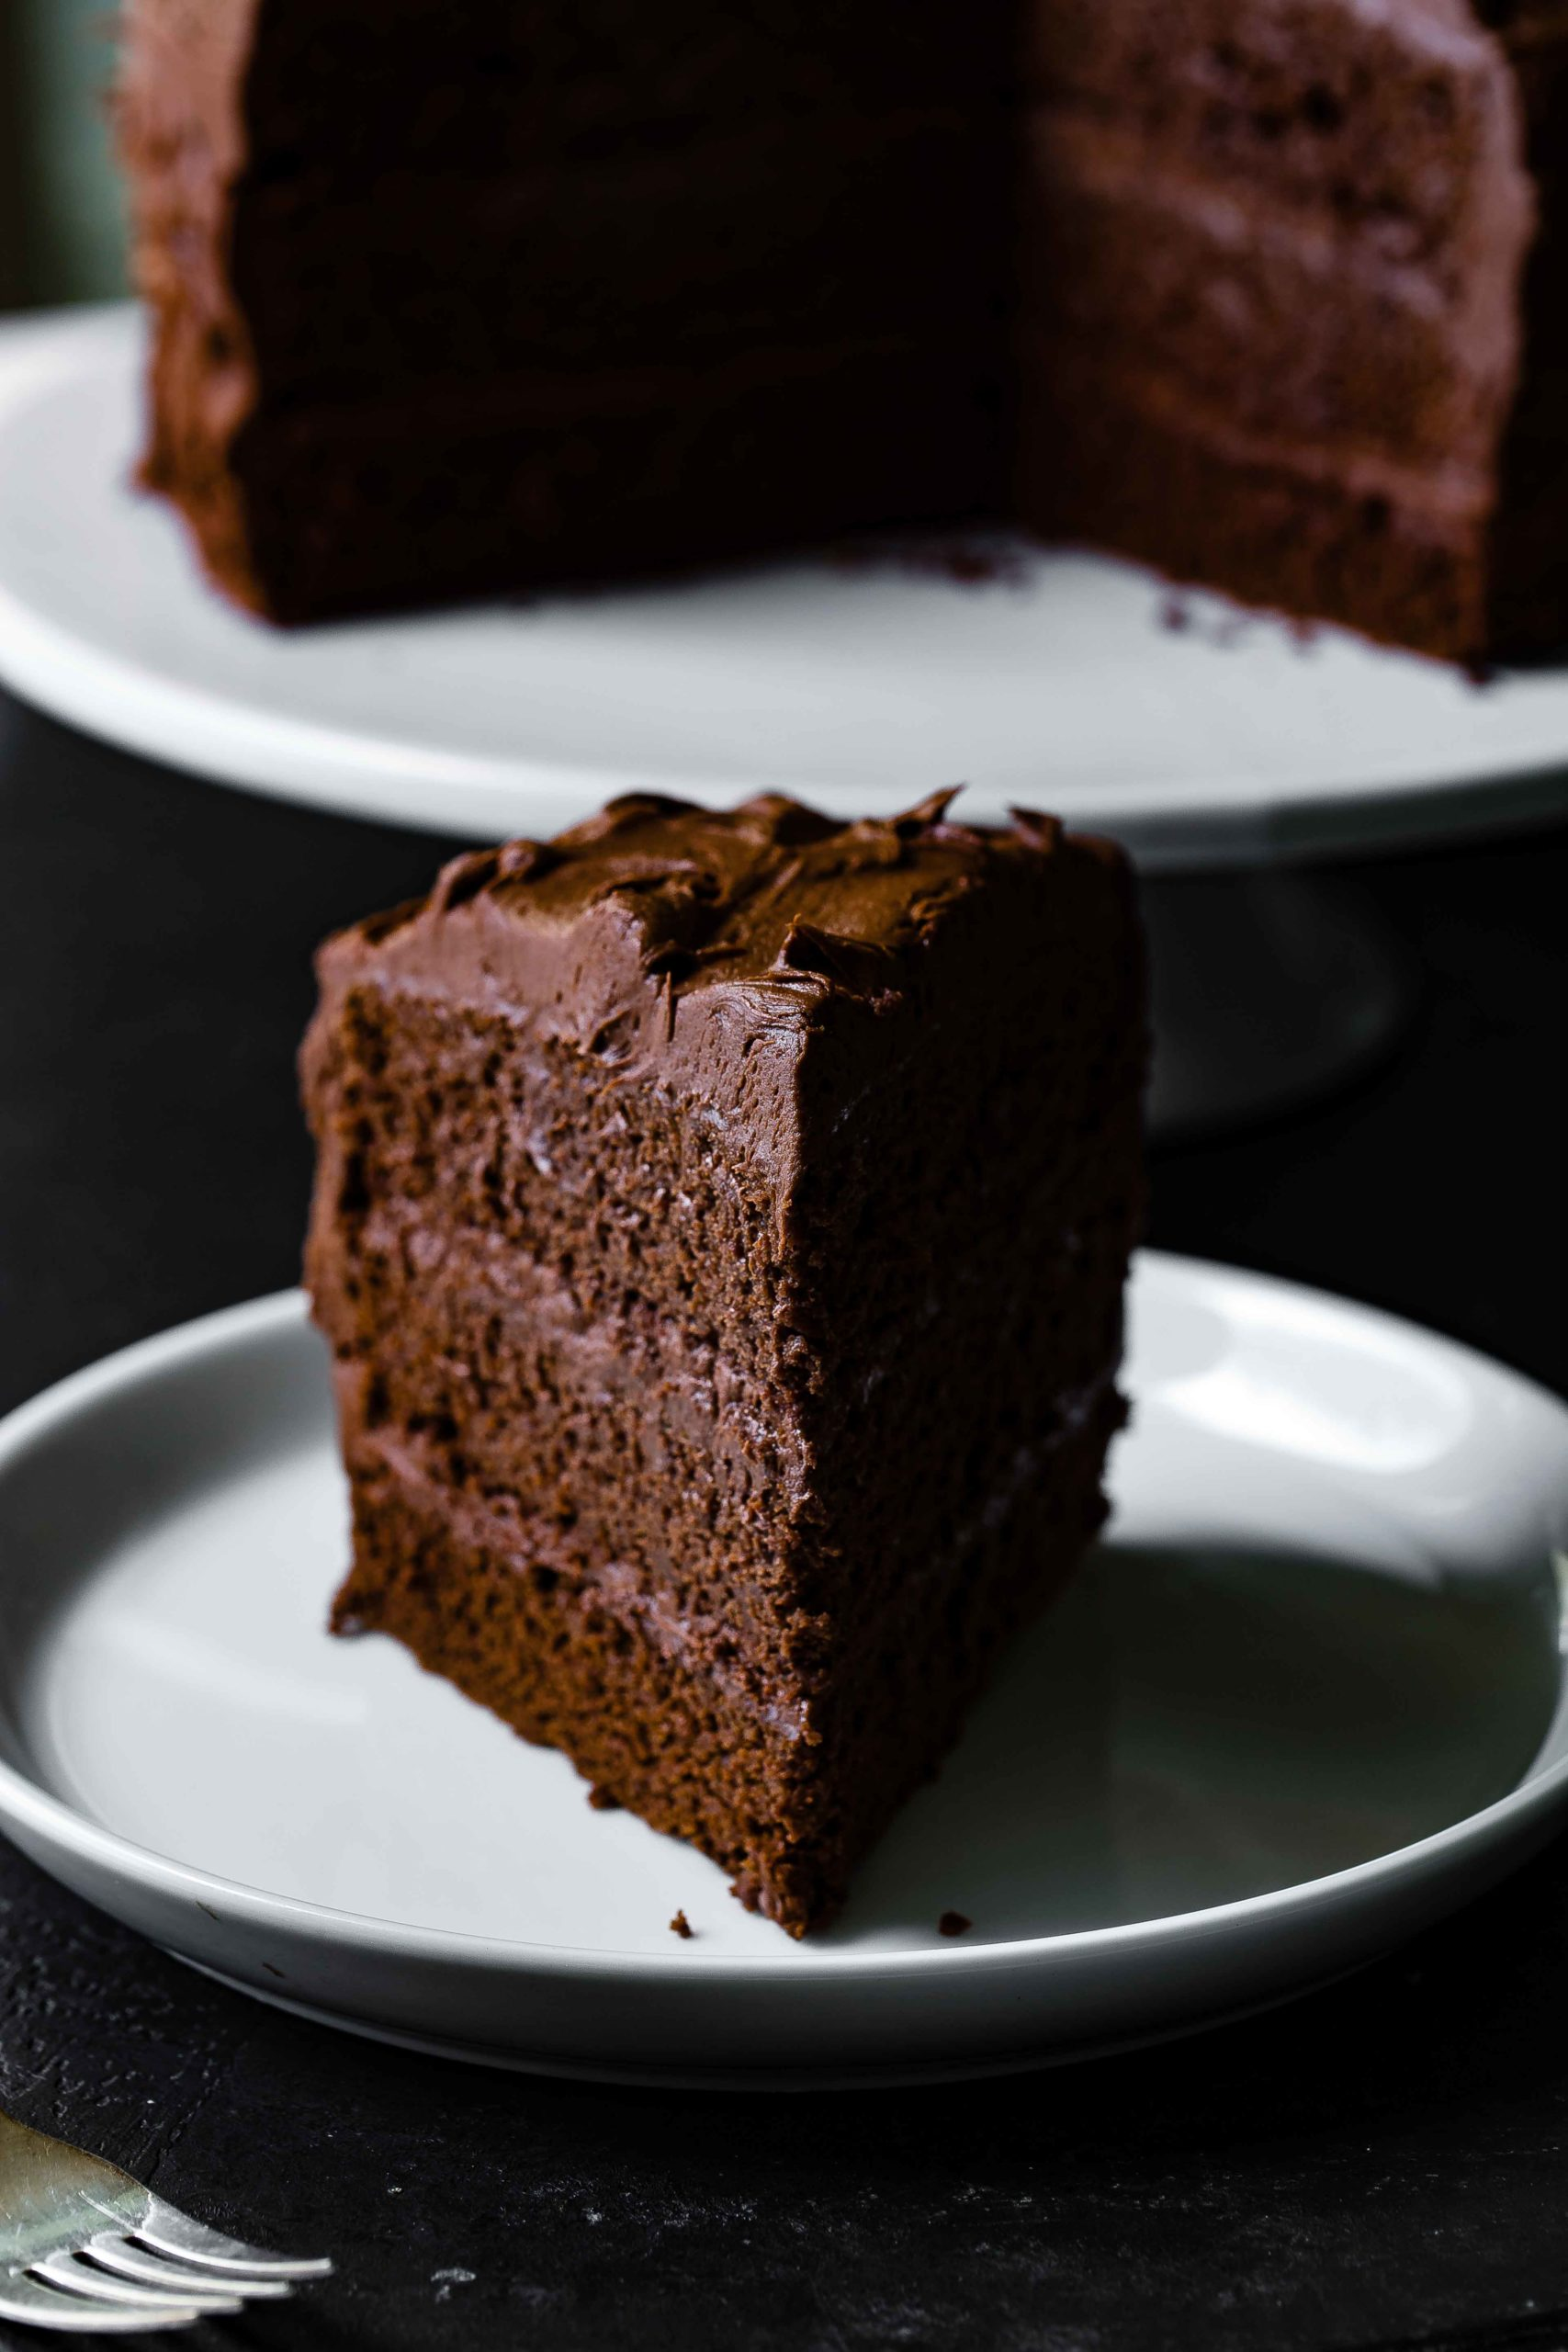 A slice of chocolate layer cake with chocolate frosting. Chocolate frosting is spread between each layer and on the top and sides of the cake. There is a cake plate with chocolate cake in the background.